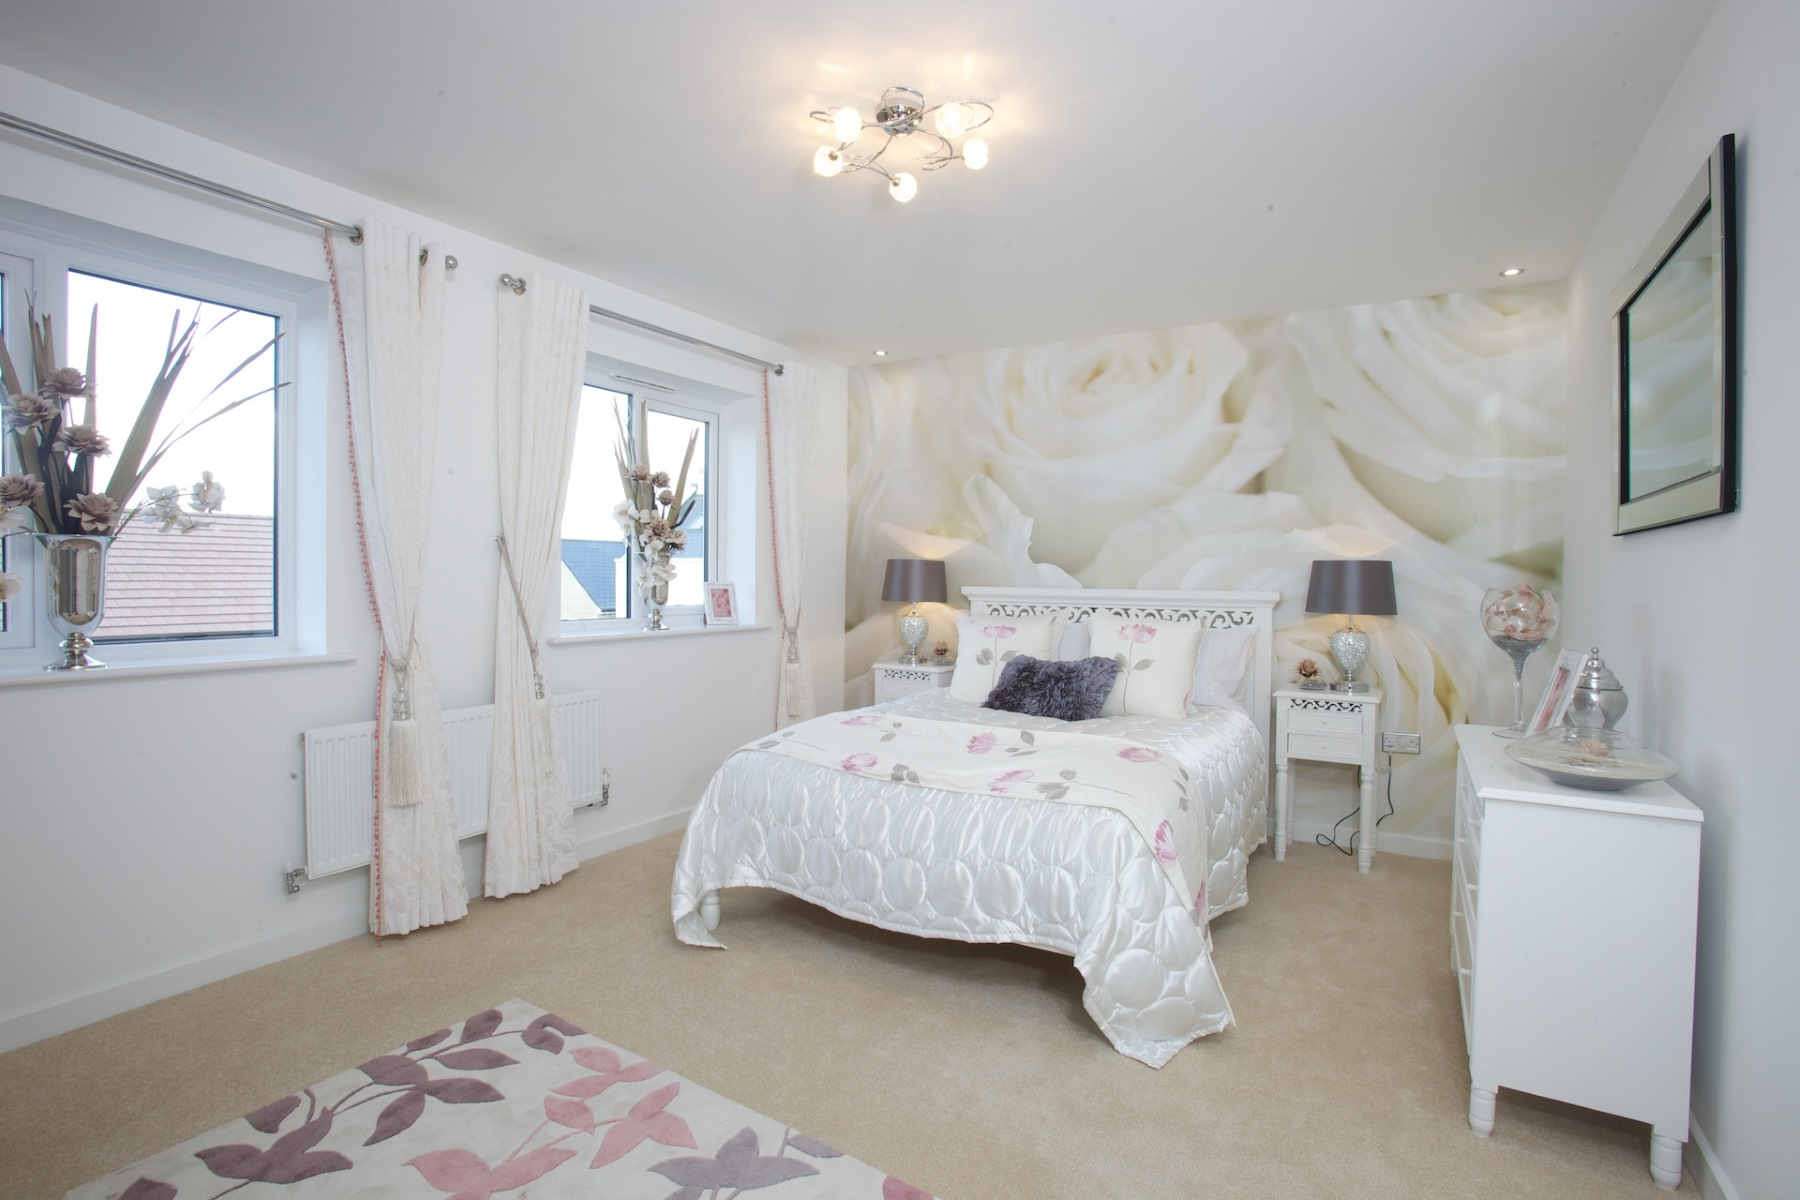 Typical Taylor Wimpey home - Bedroom